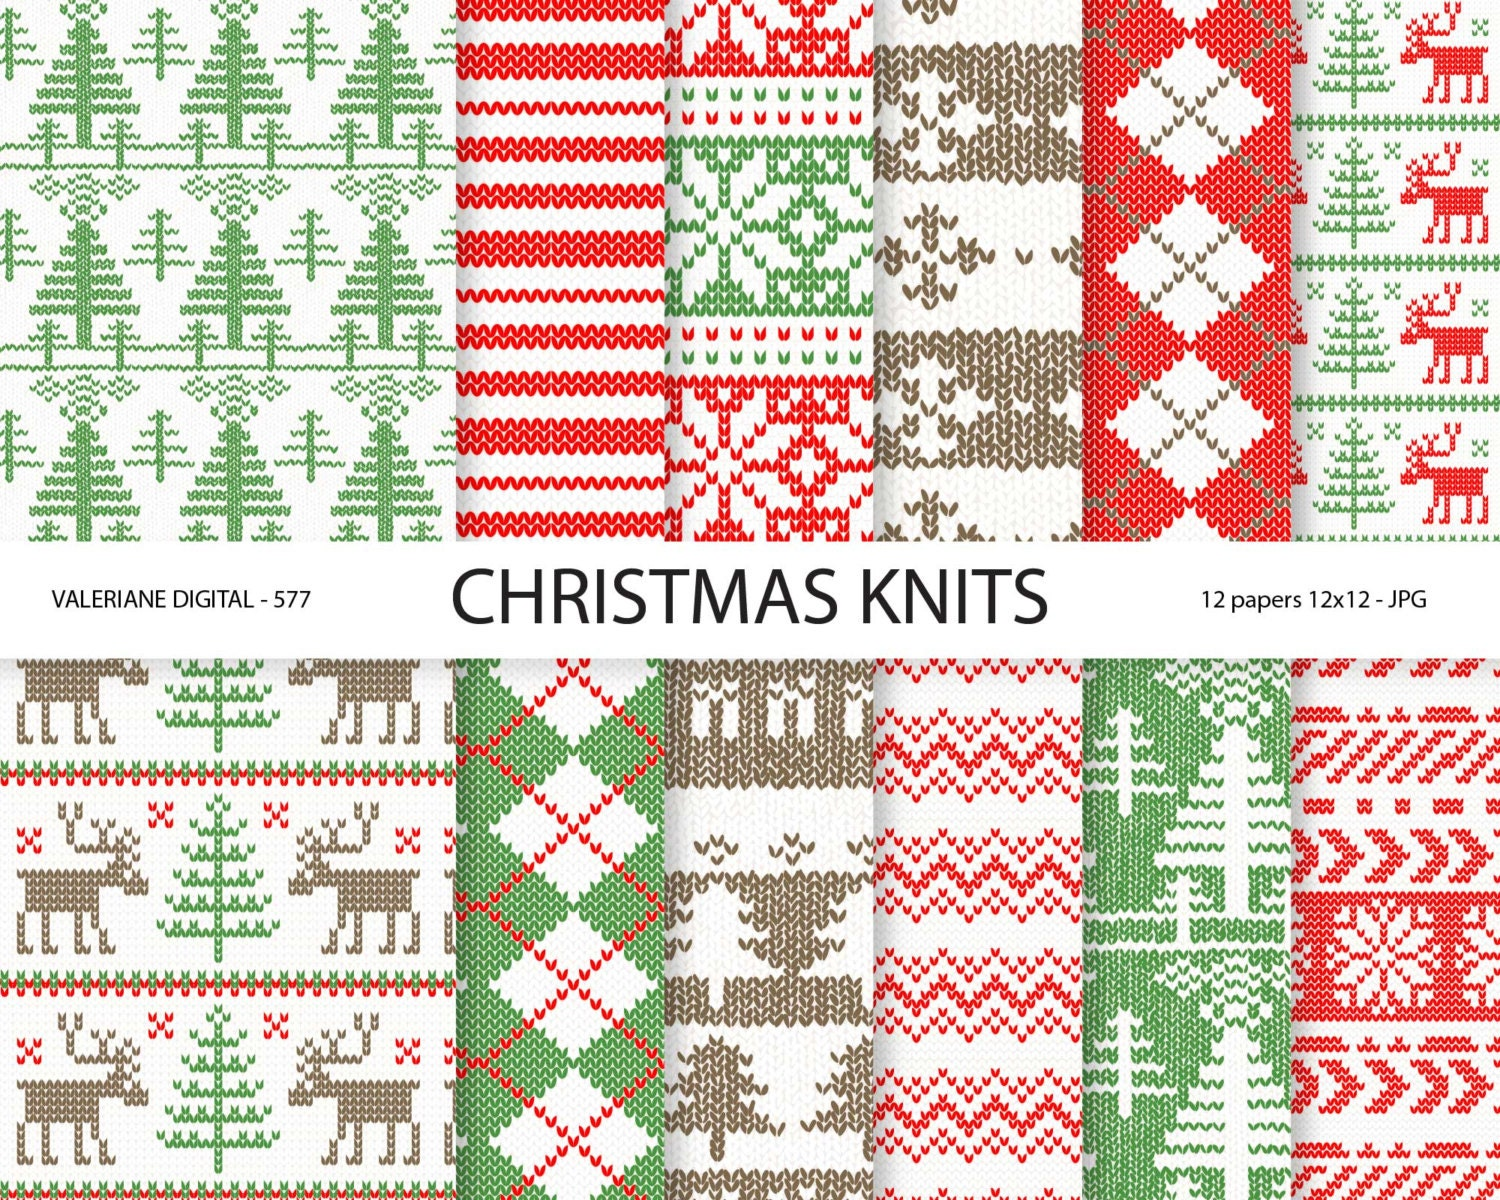 Christmas sweater digital paper winter knits red and green winter christmas sweater digital paper winter knits red and green winter sweater patterns christmas scrapbook paper pack 577 bankloansurffo Images